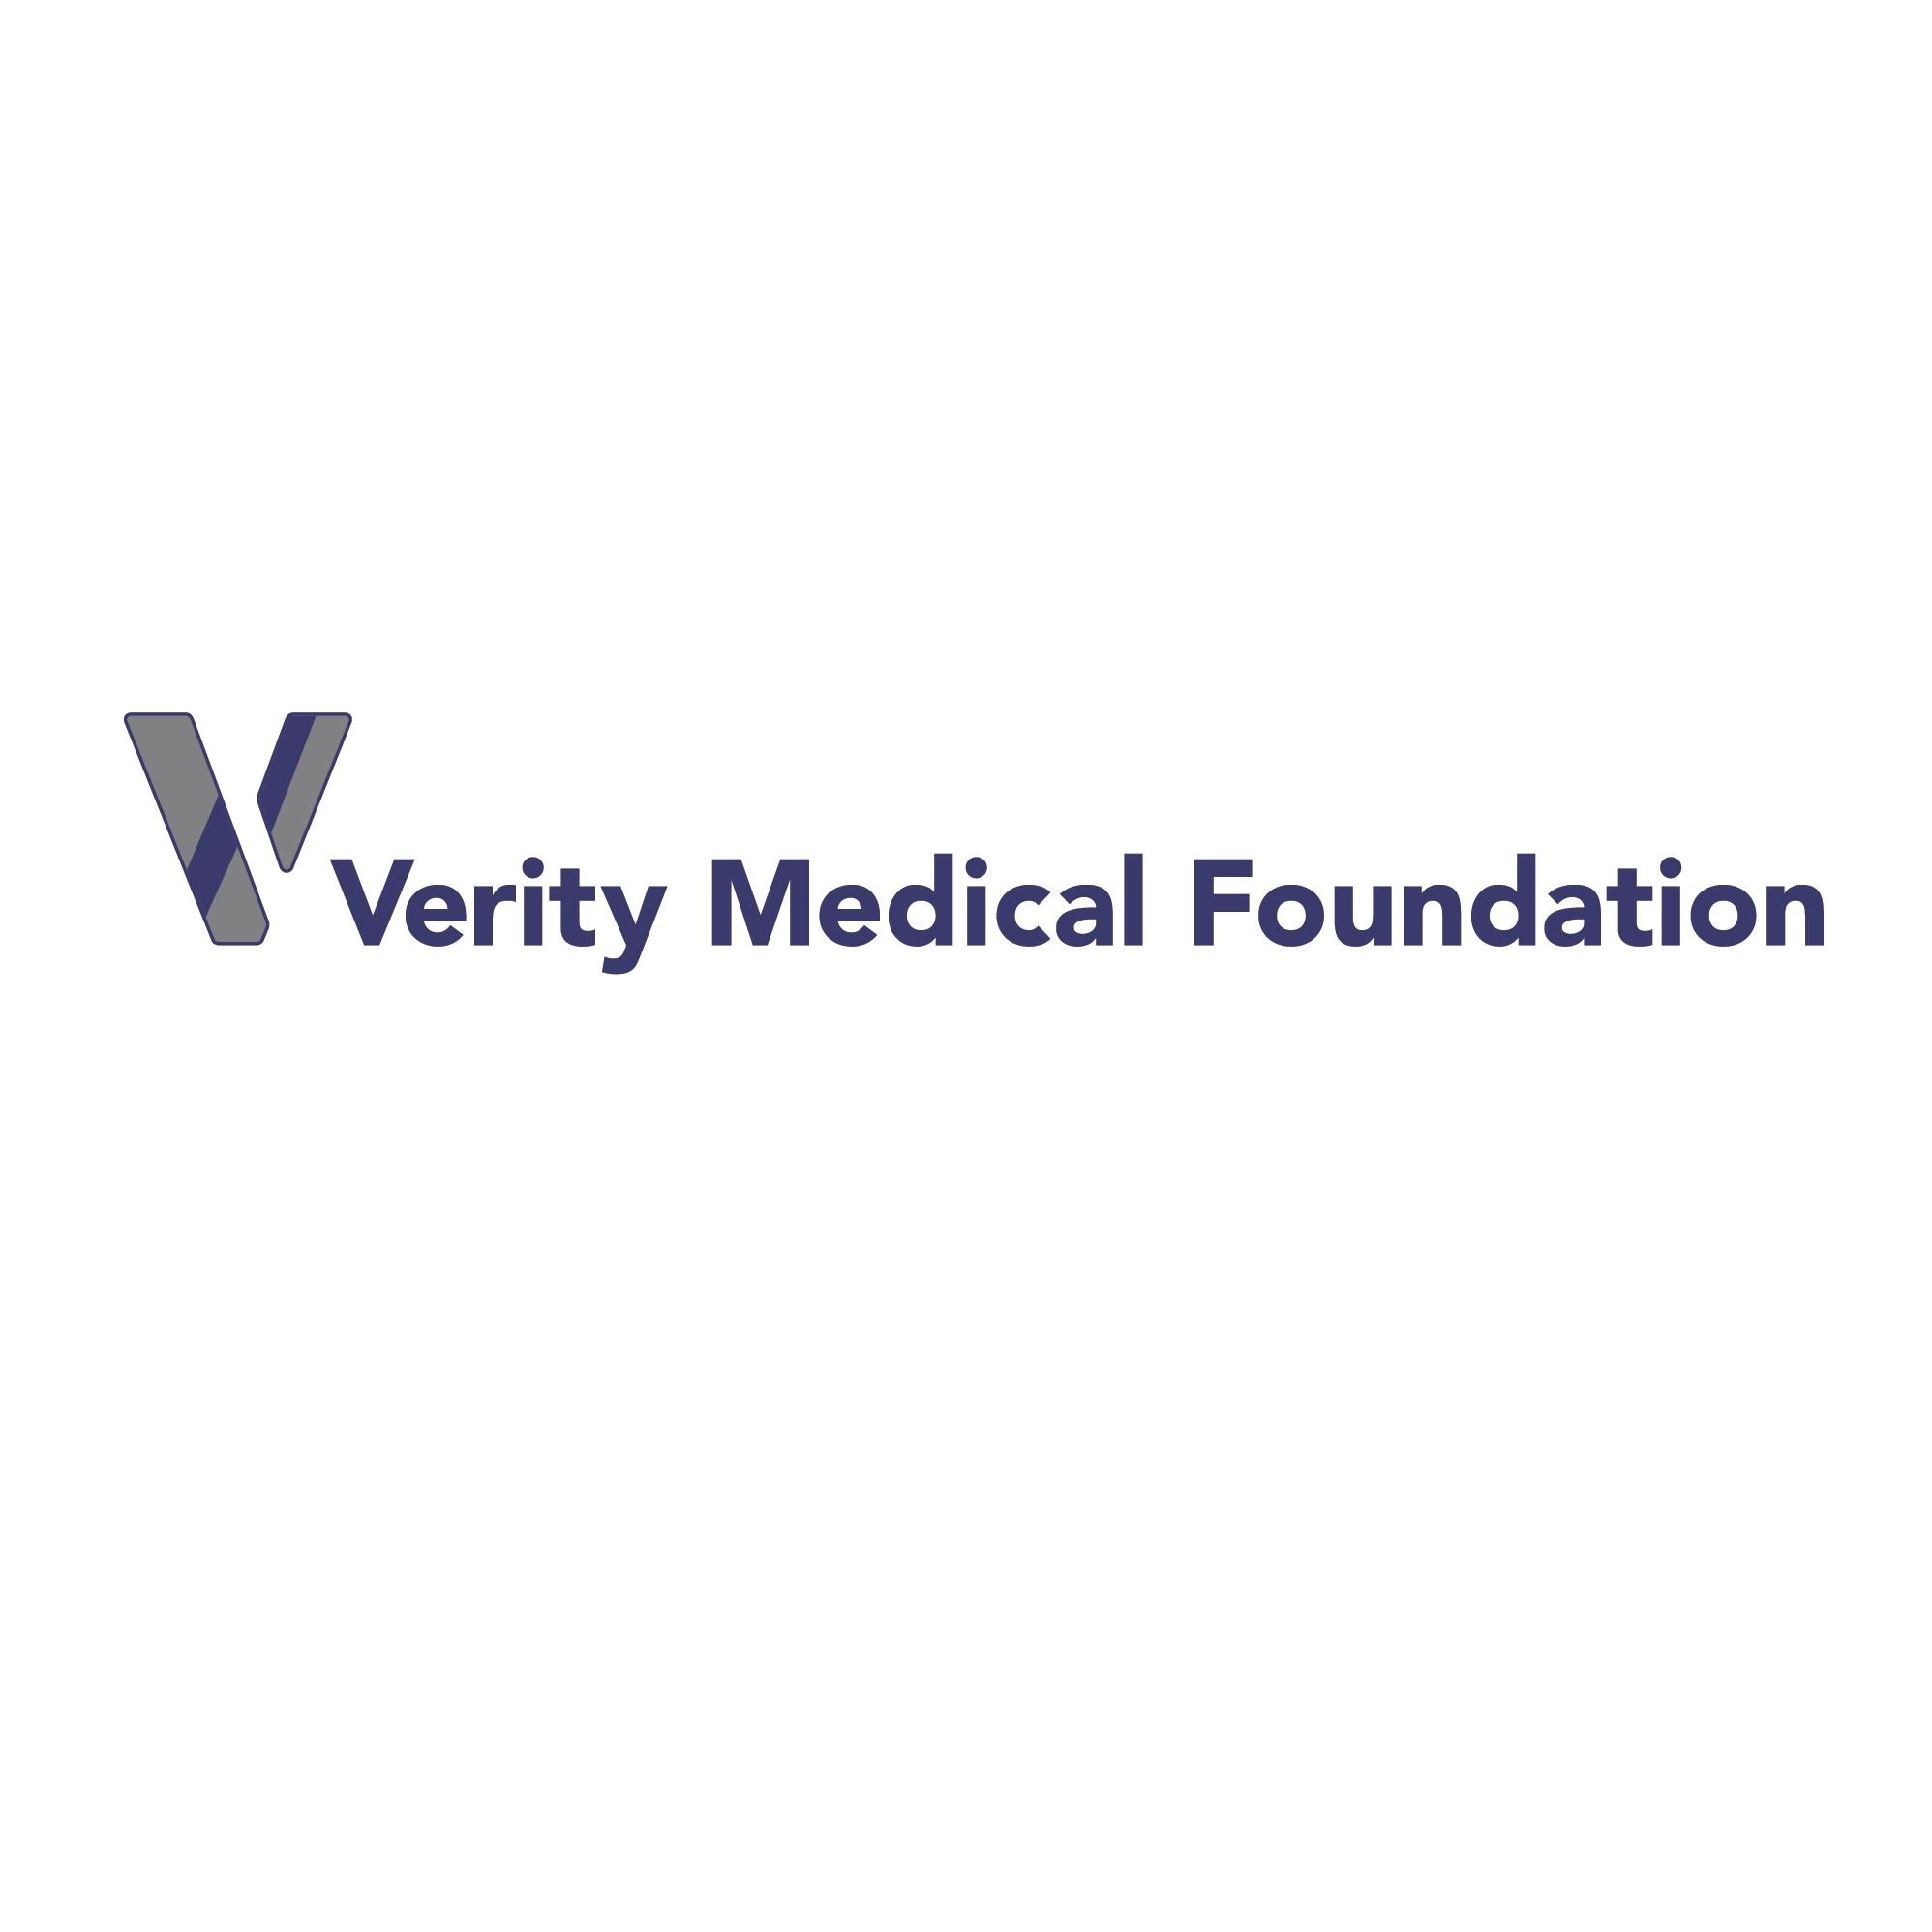 Verity Medical Foundation